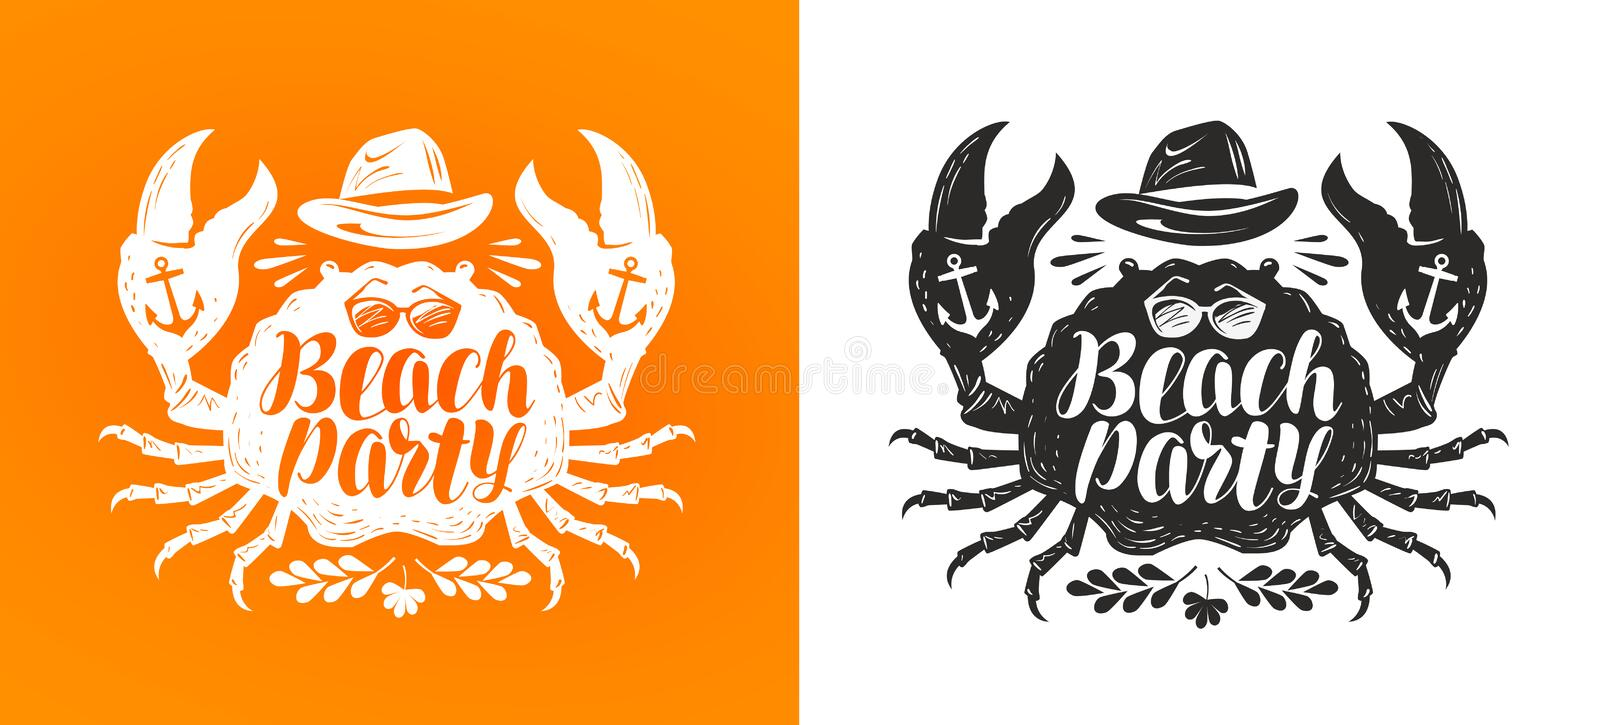 Crab, typographic design. Travel, journey concept. Beach party, lettering vector illustration. Crab, typographic design. Travel, journey concept Beach party stock illustration